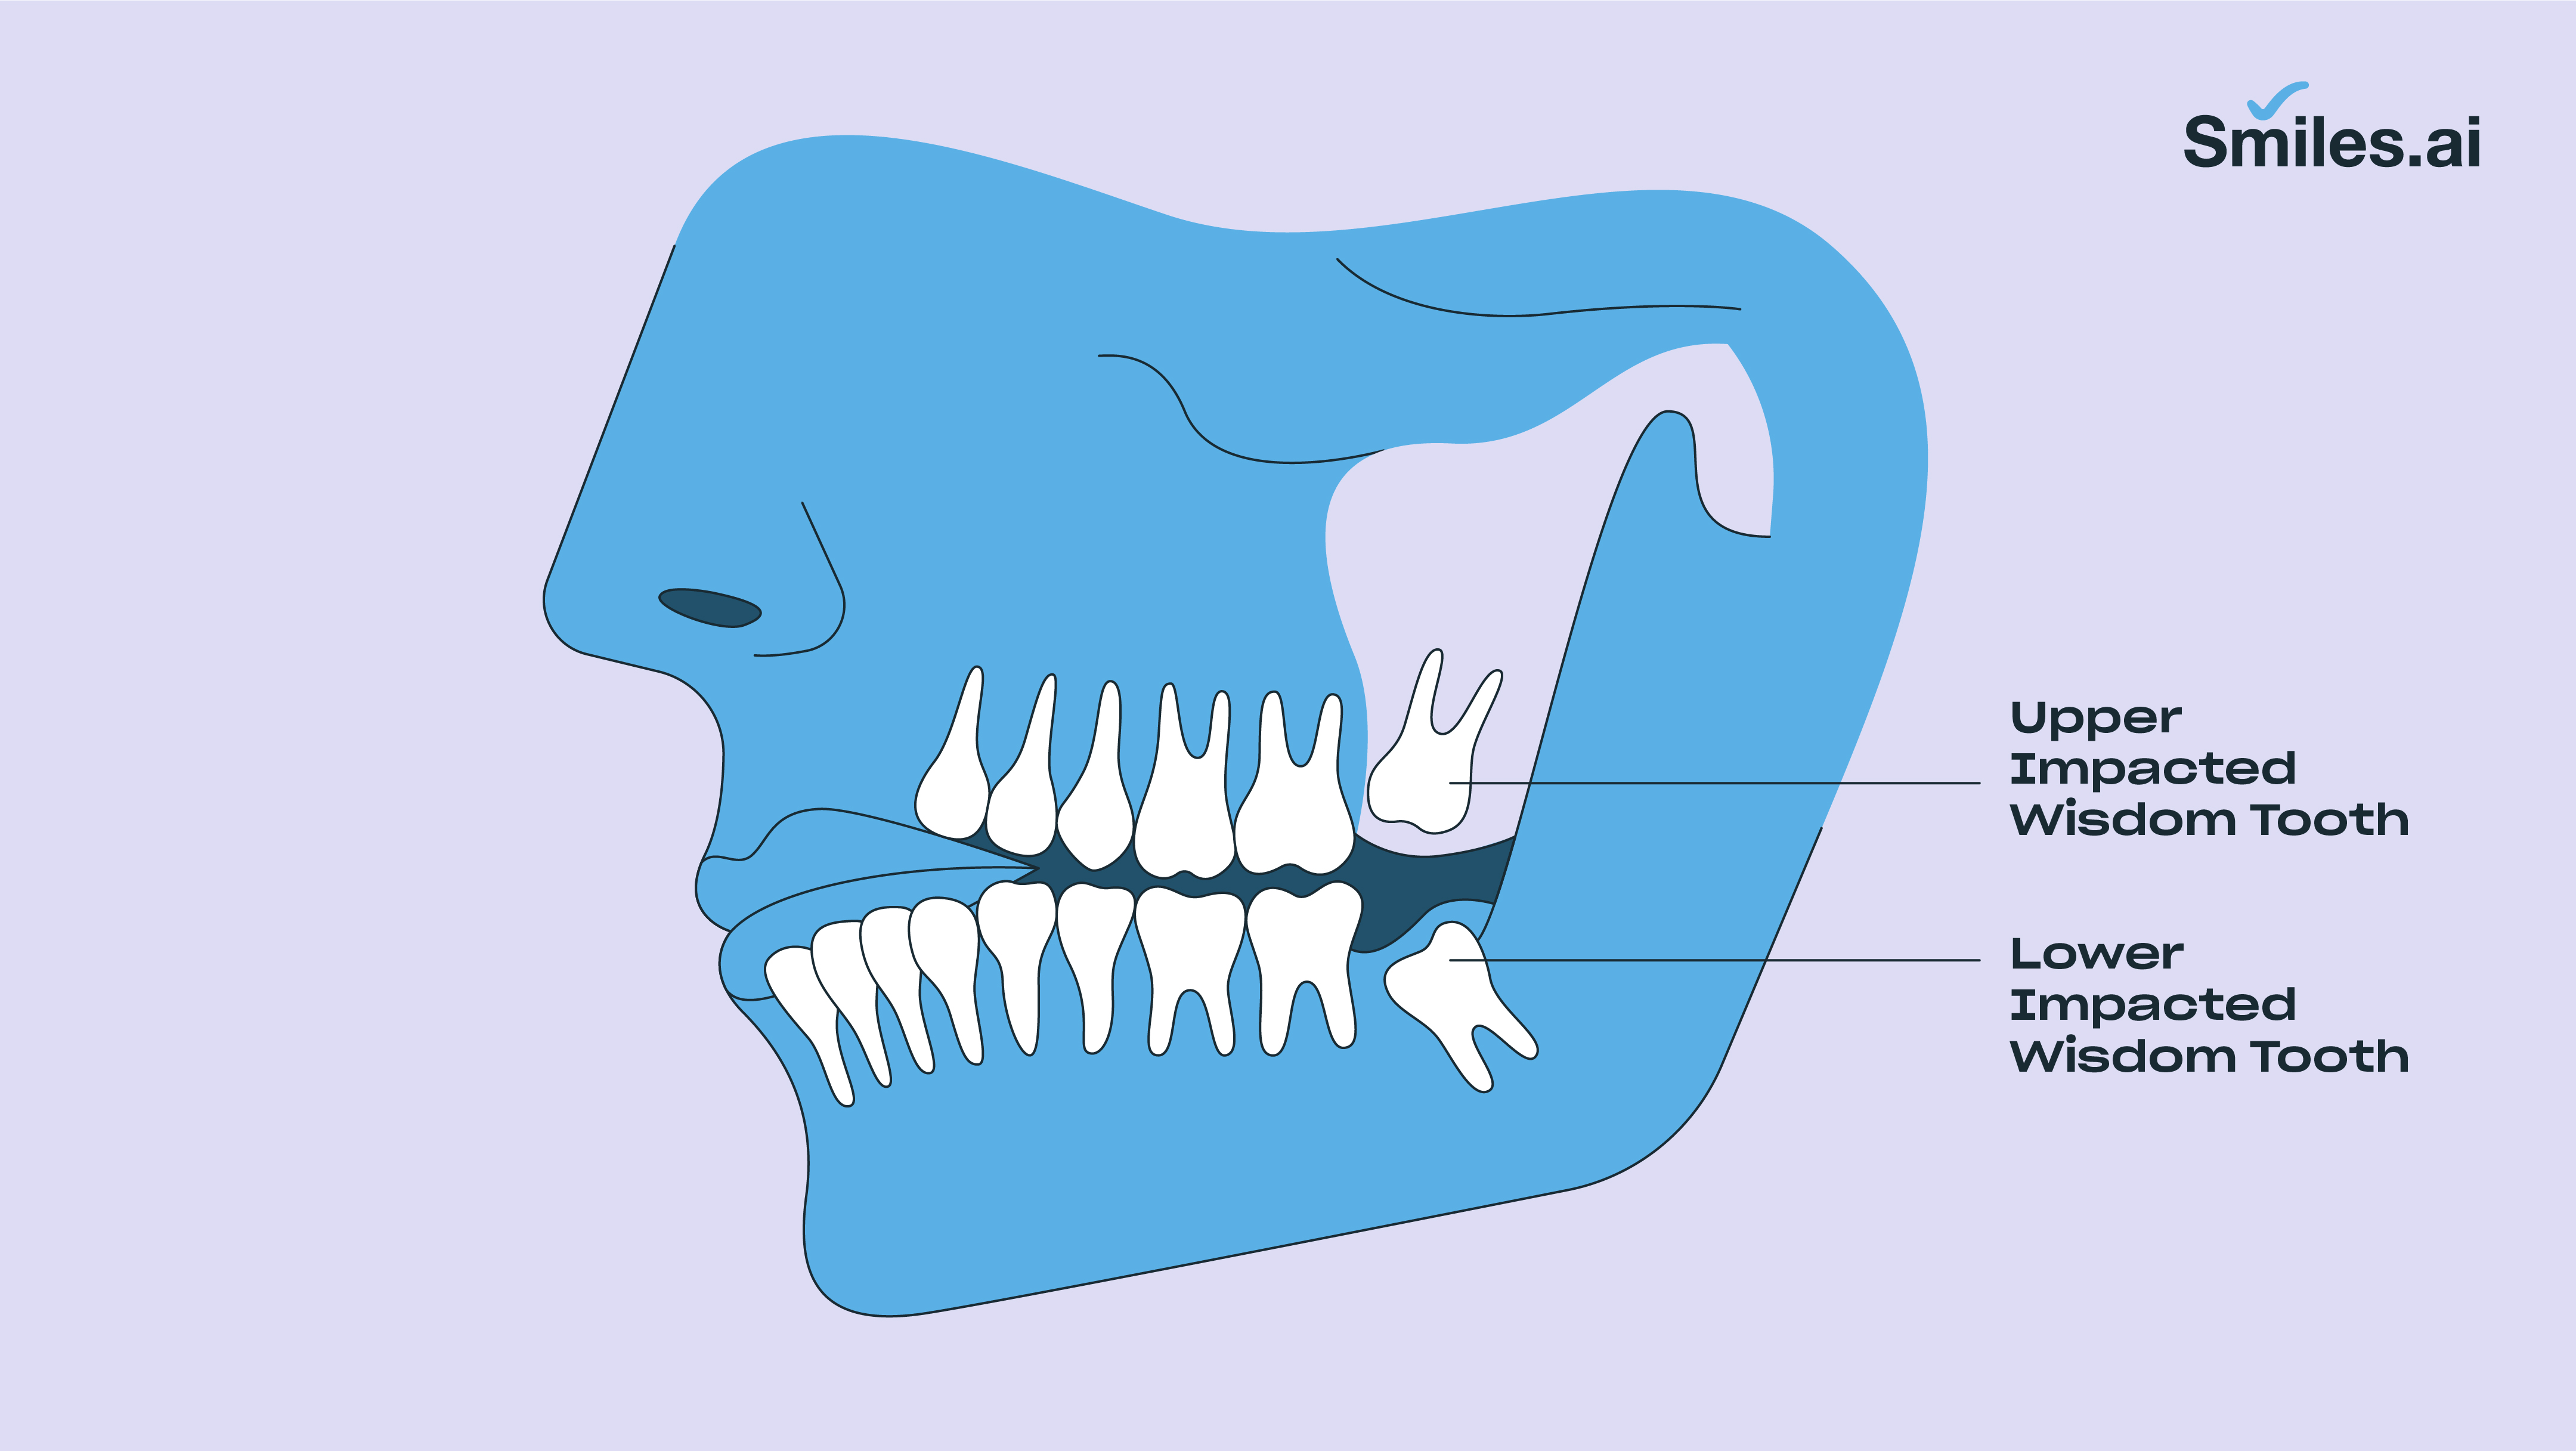 Impacted wisdom tooth